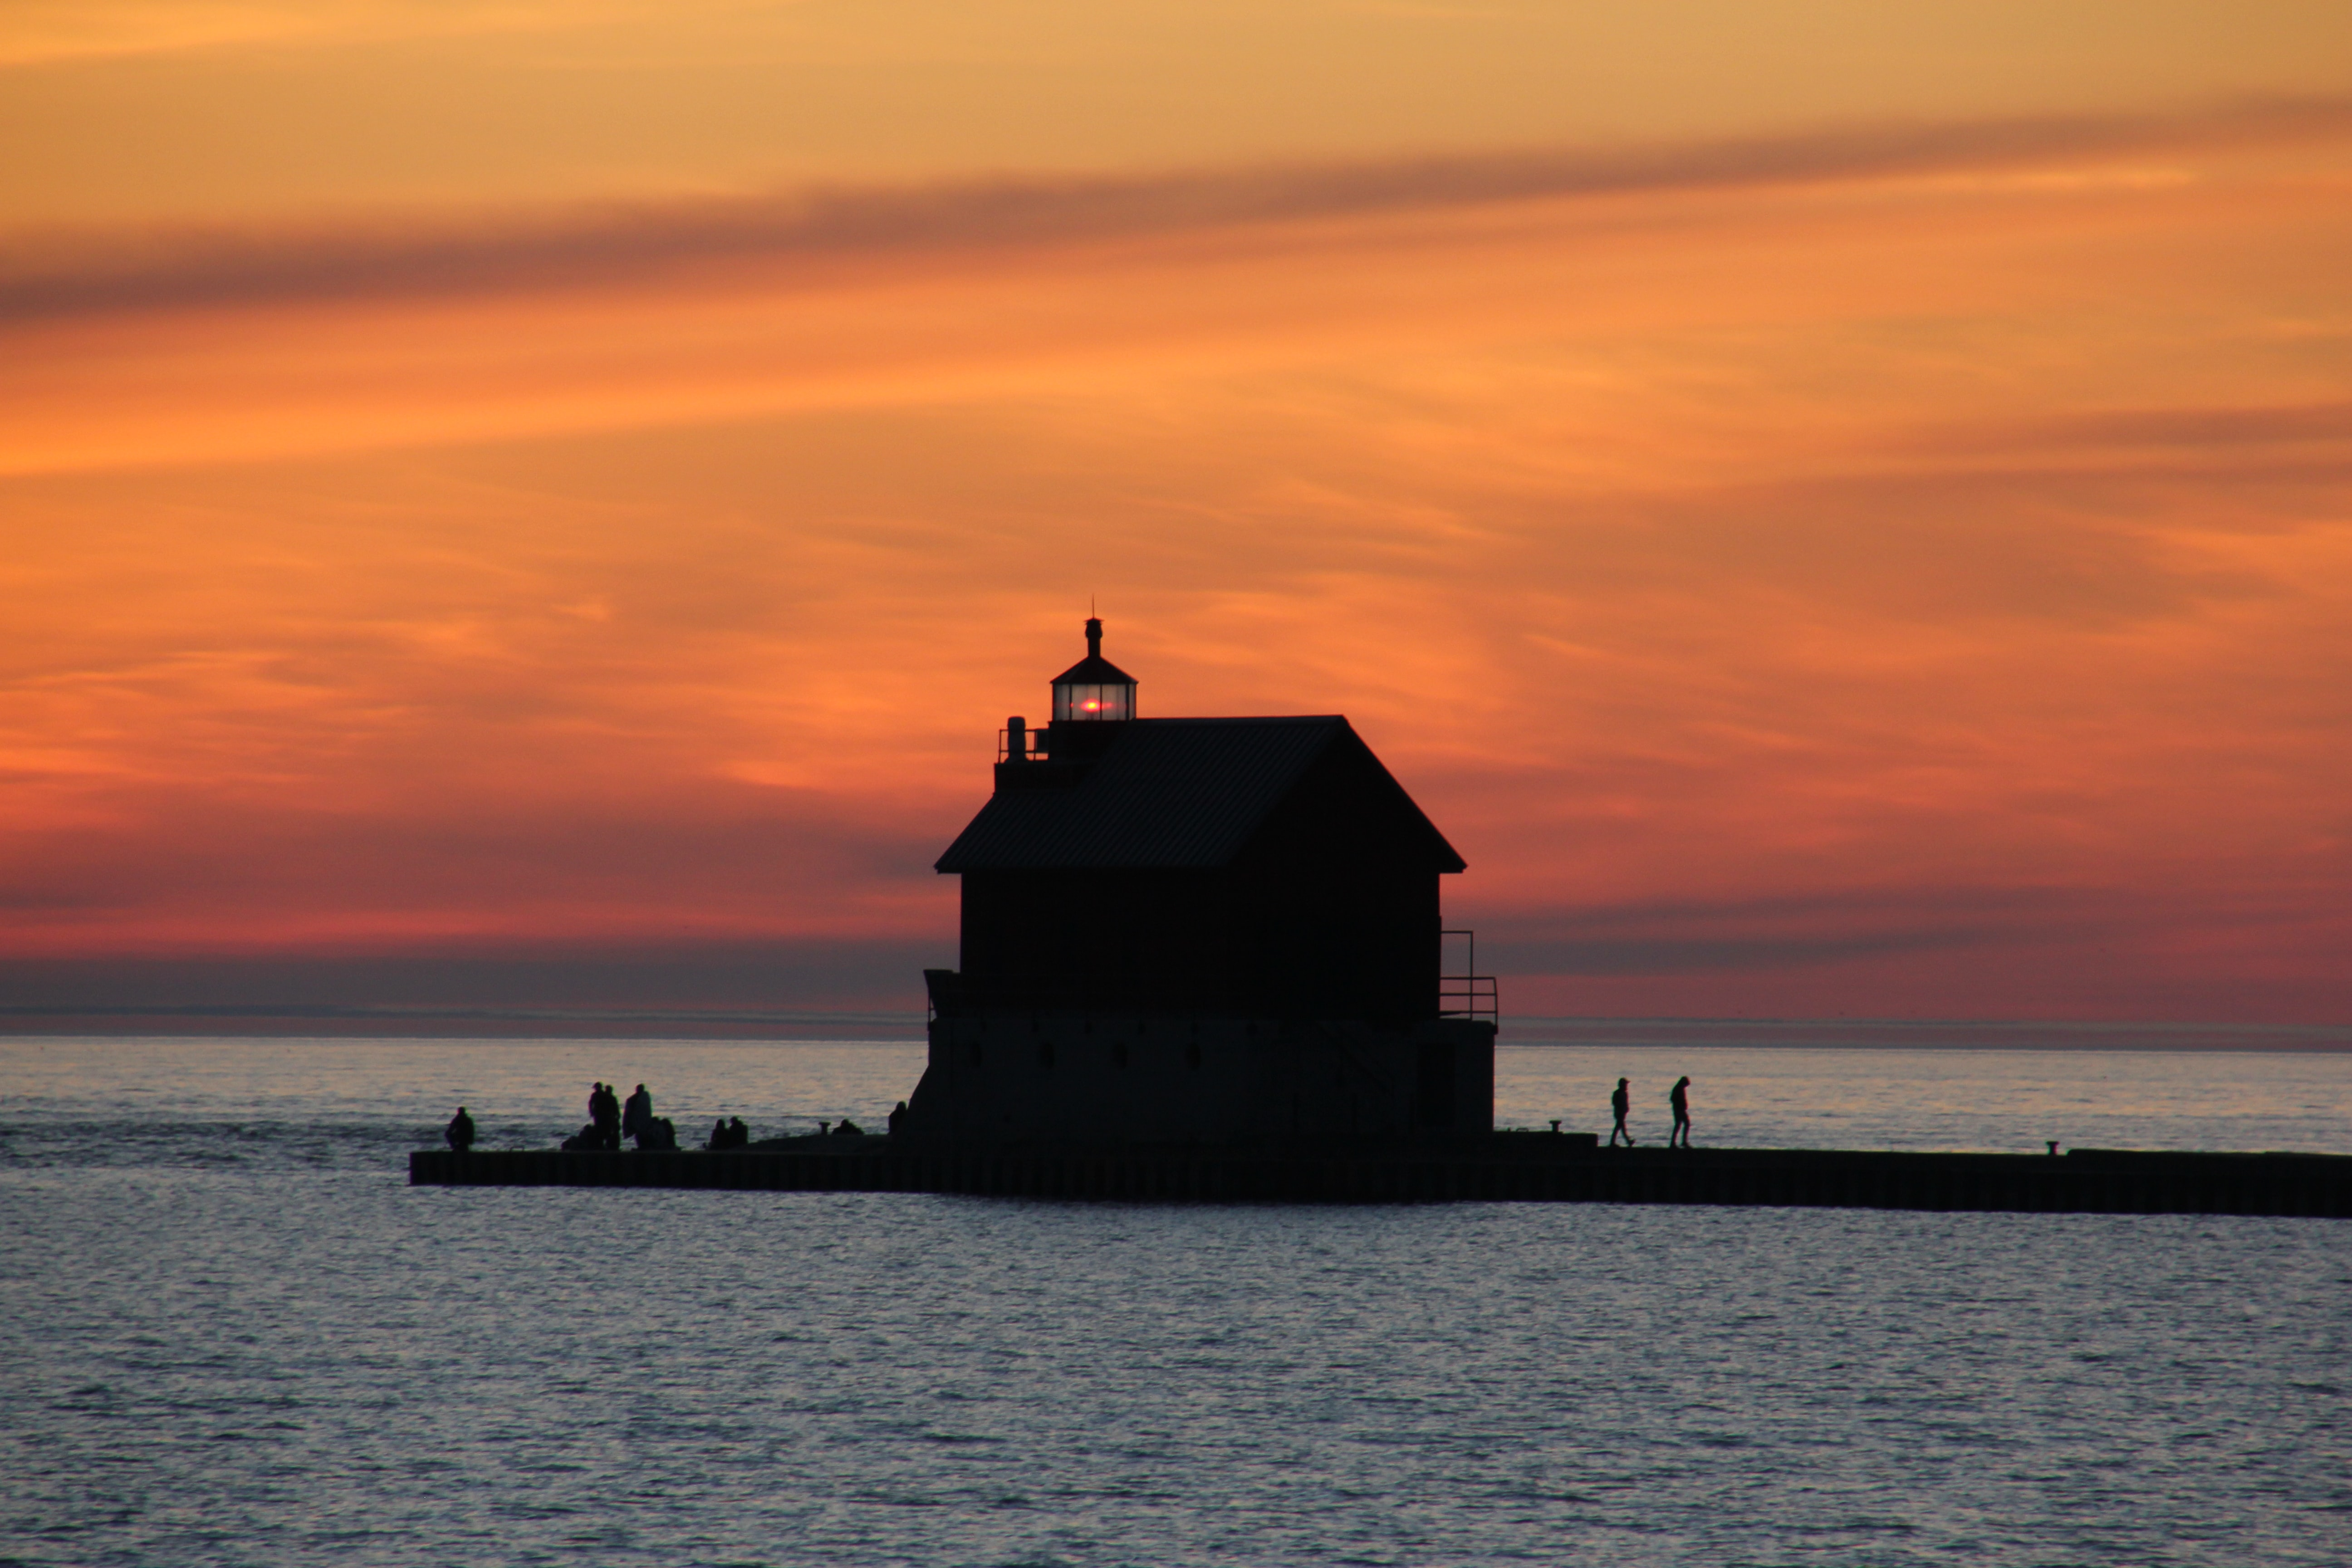 Distant shot of a small lighthouse in the sea, with people around, a cloudy orange sunset above